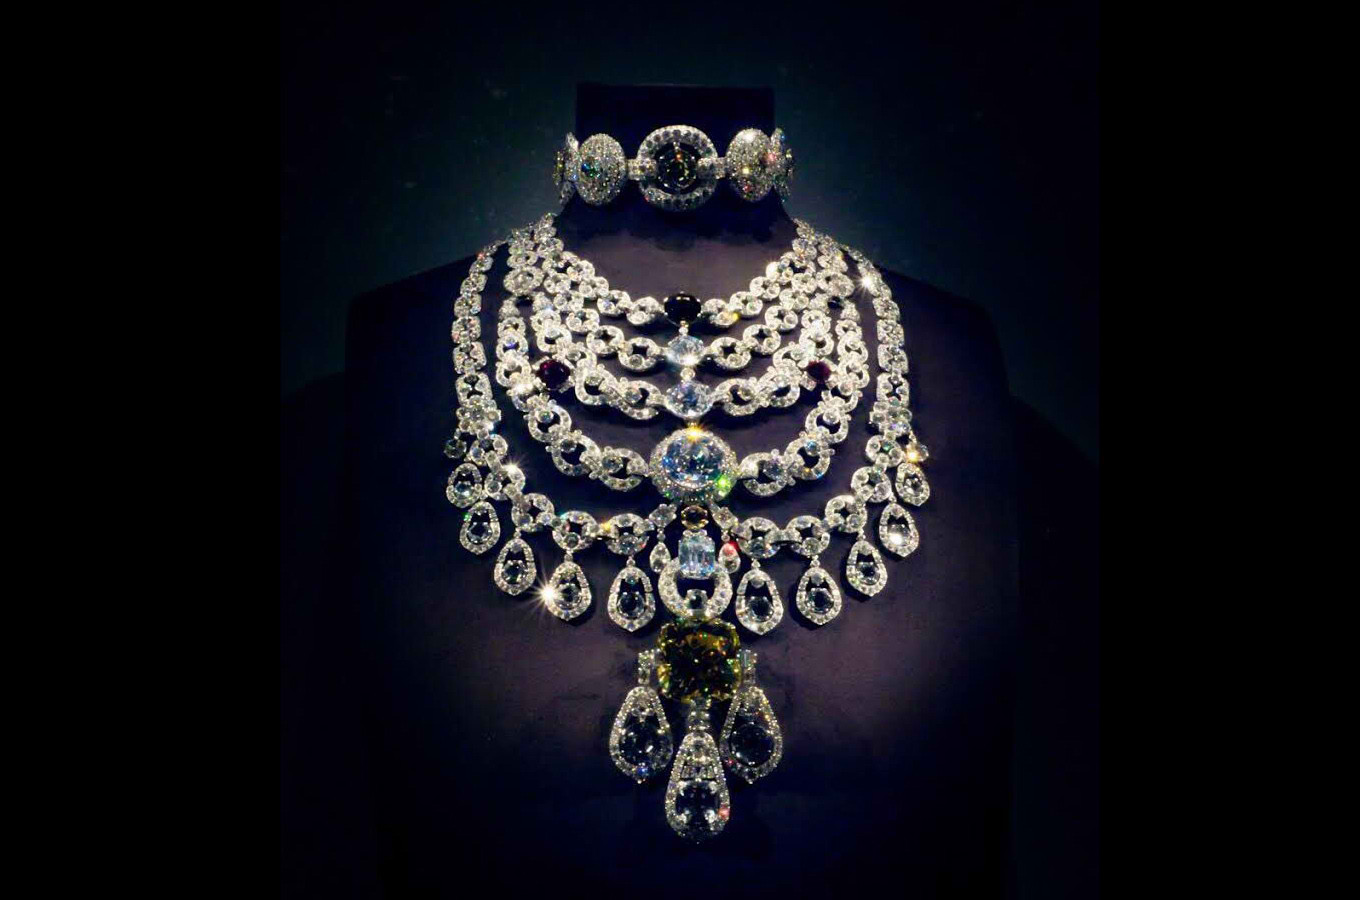 The De Beers Bought By The Maharaja Of Patiala